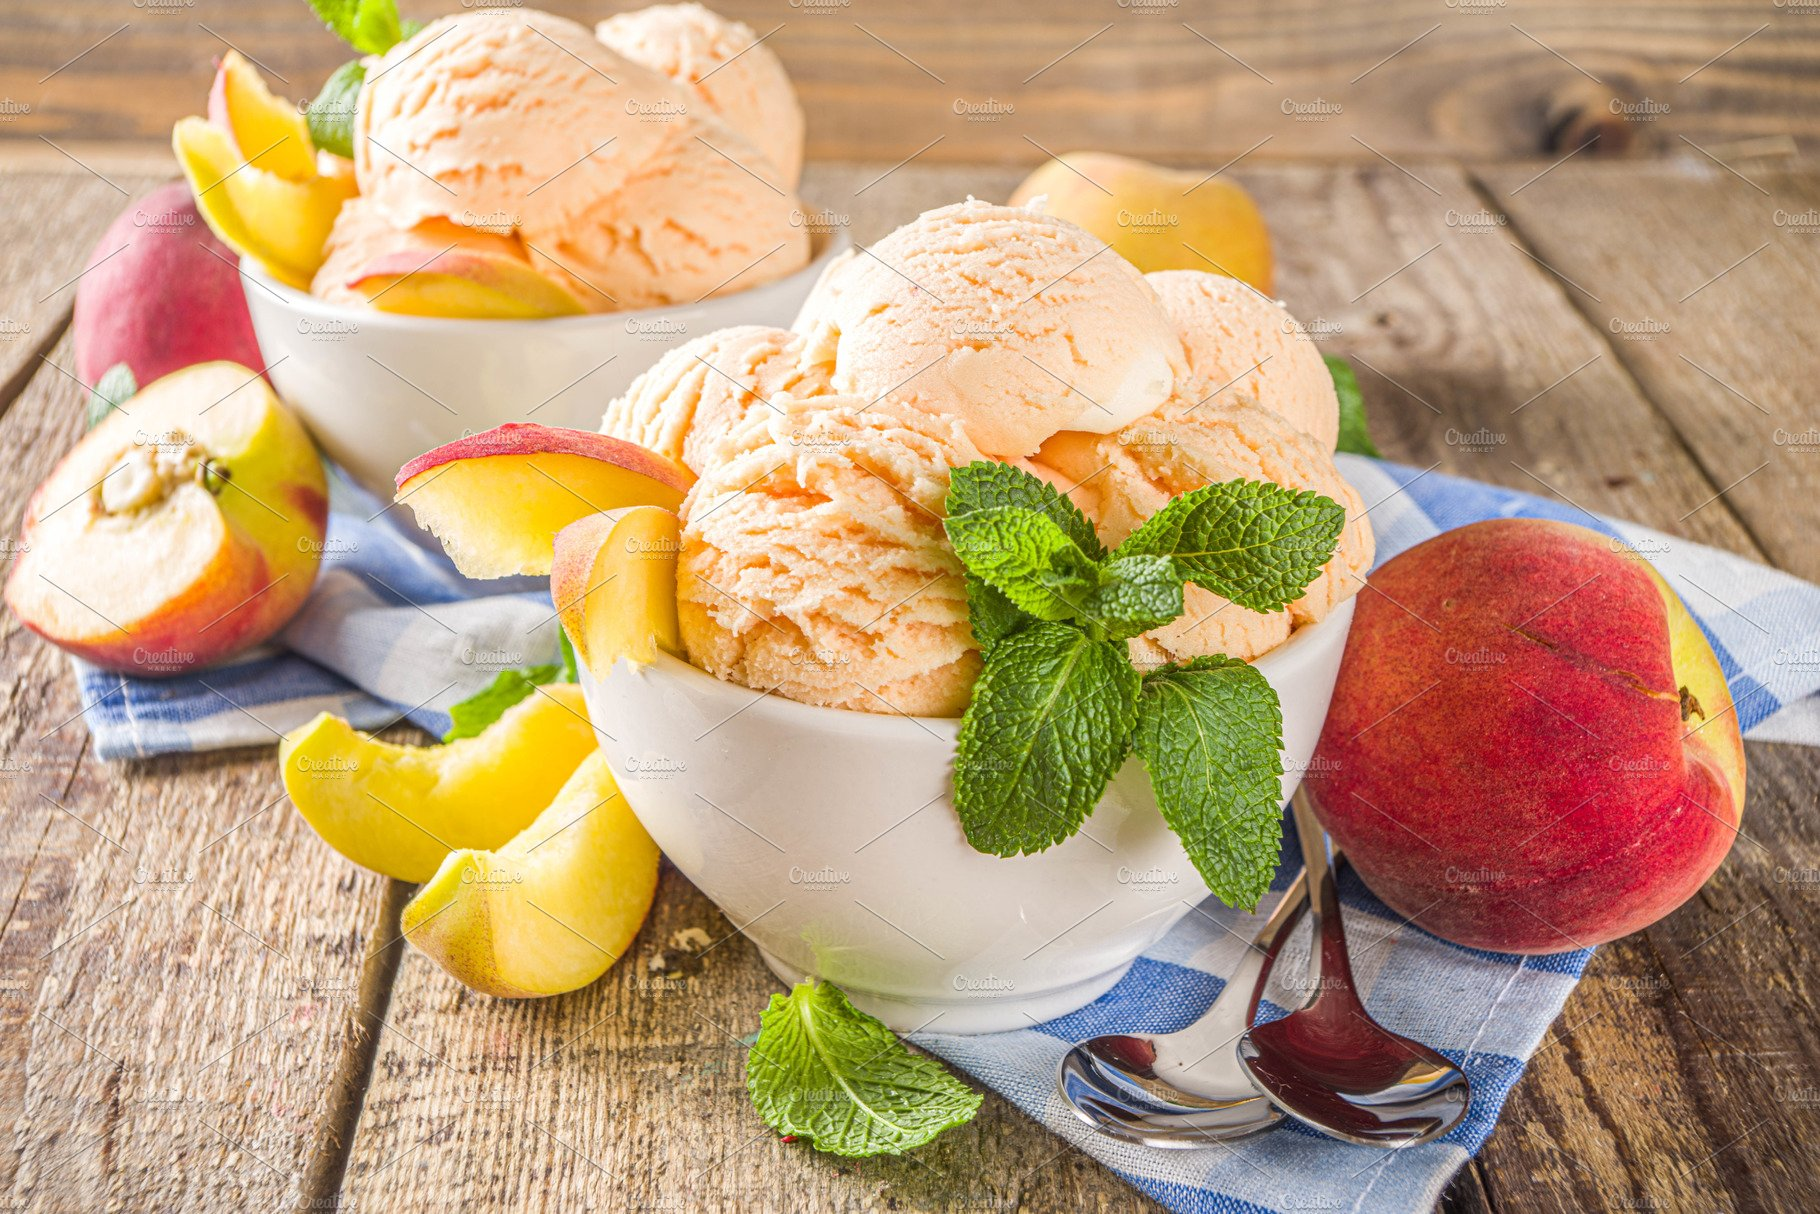 Peach Ice Cream High Quality Stock Photos Creative Market